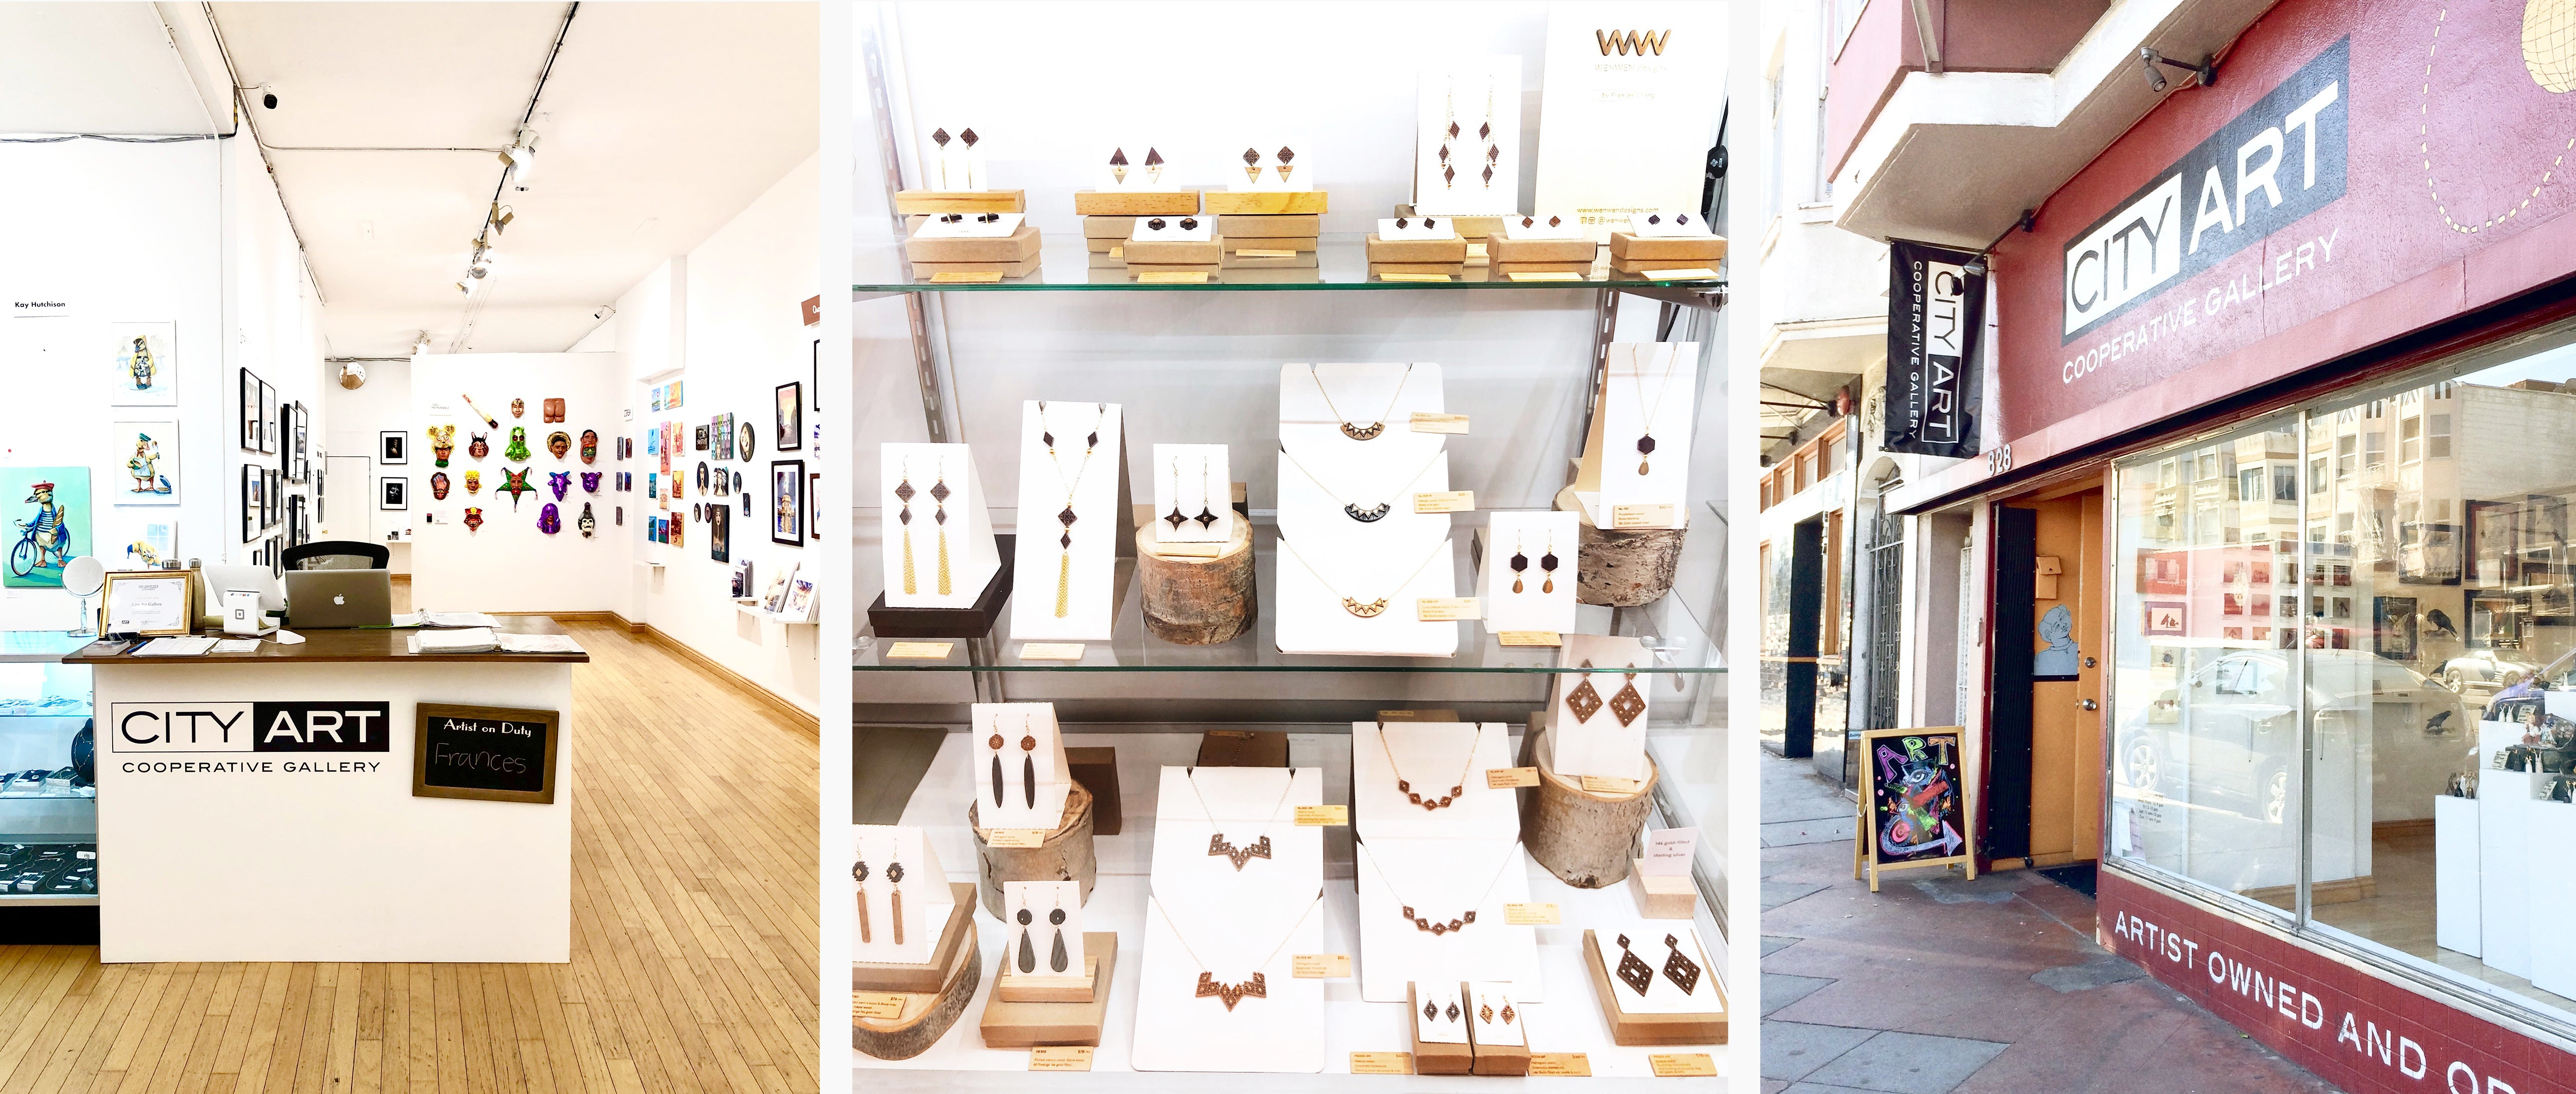 WENWEN Designs at City Art Gallery, Mission SF